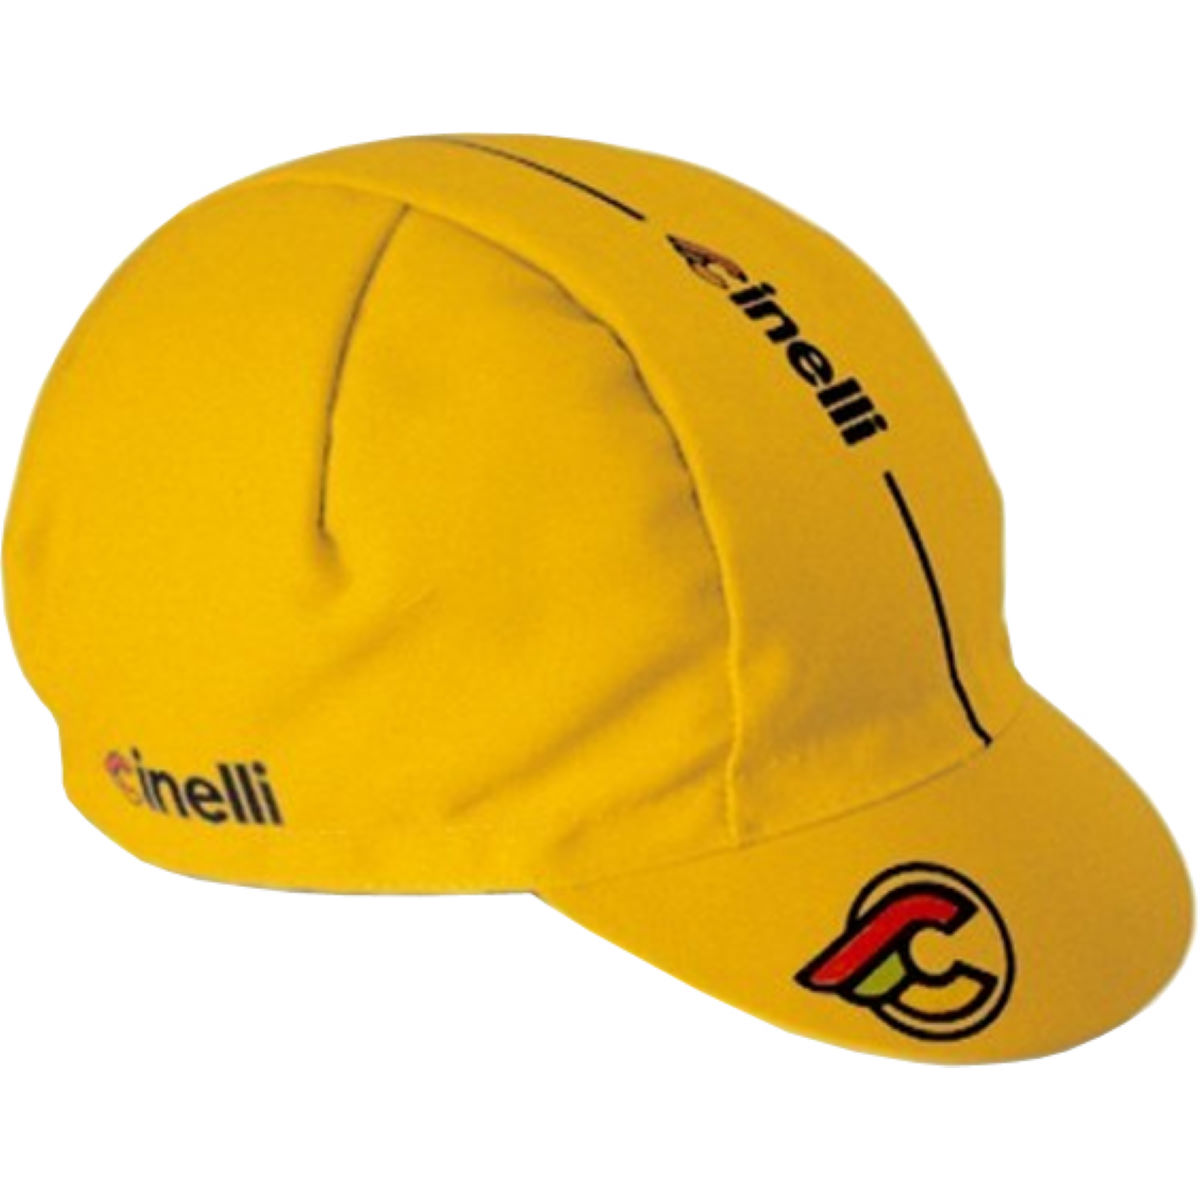 Cinelli Supercorsa Cotton Race Cap